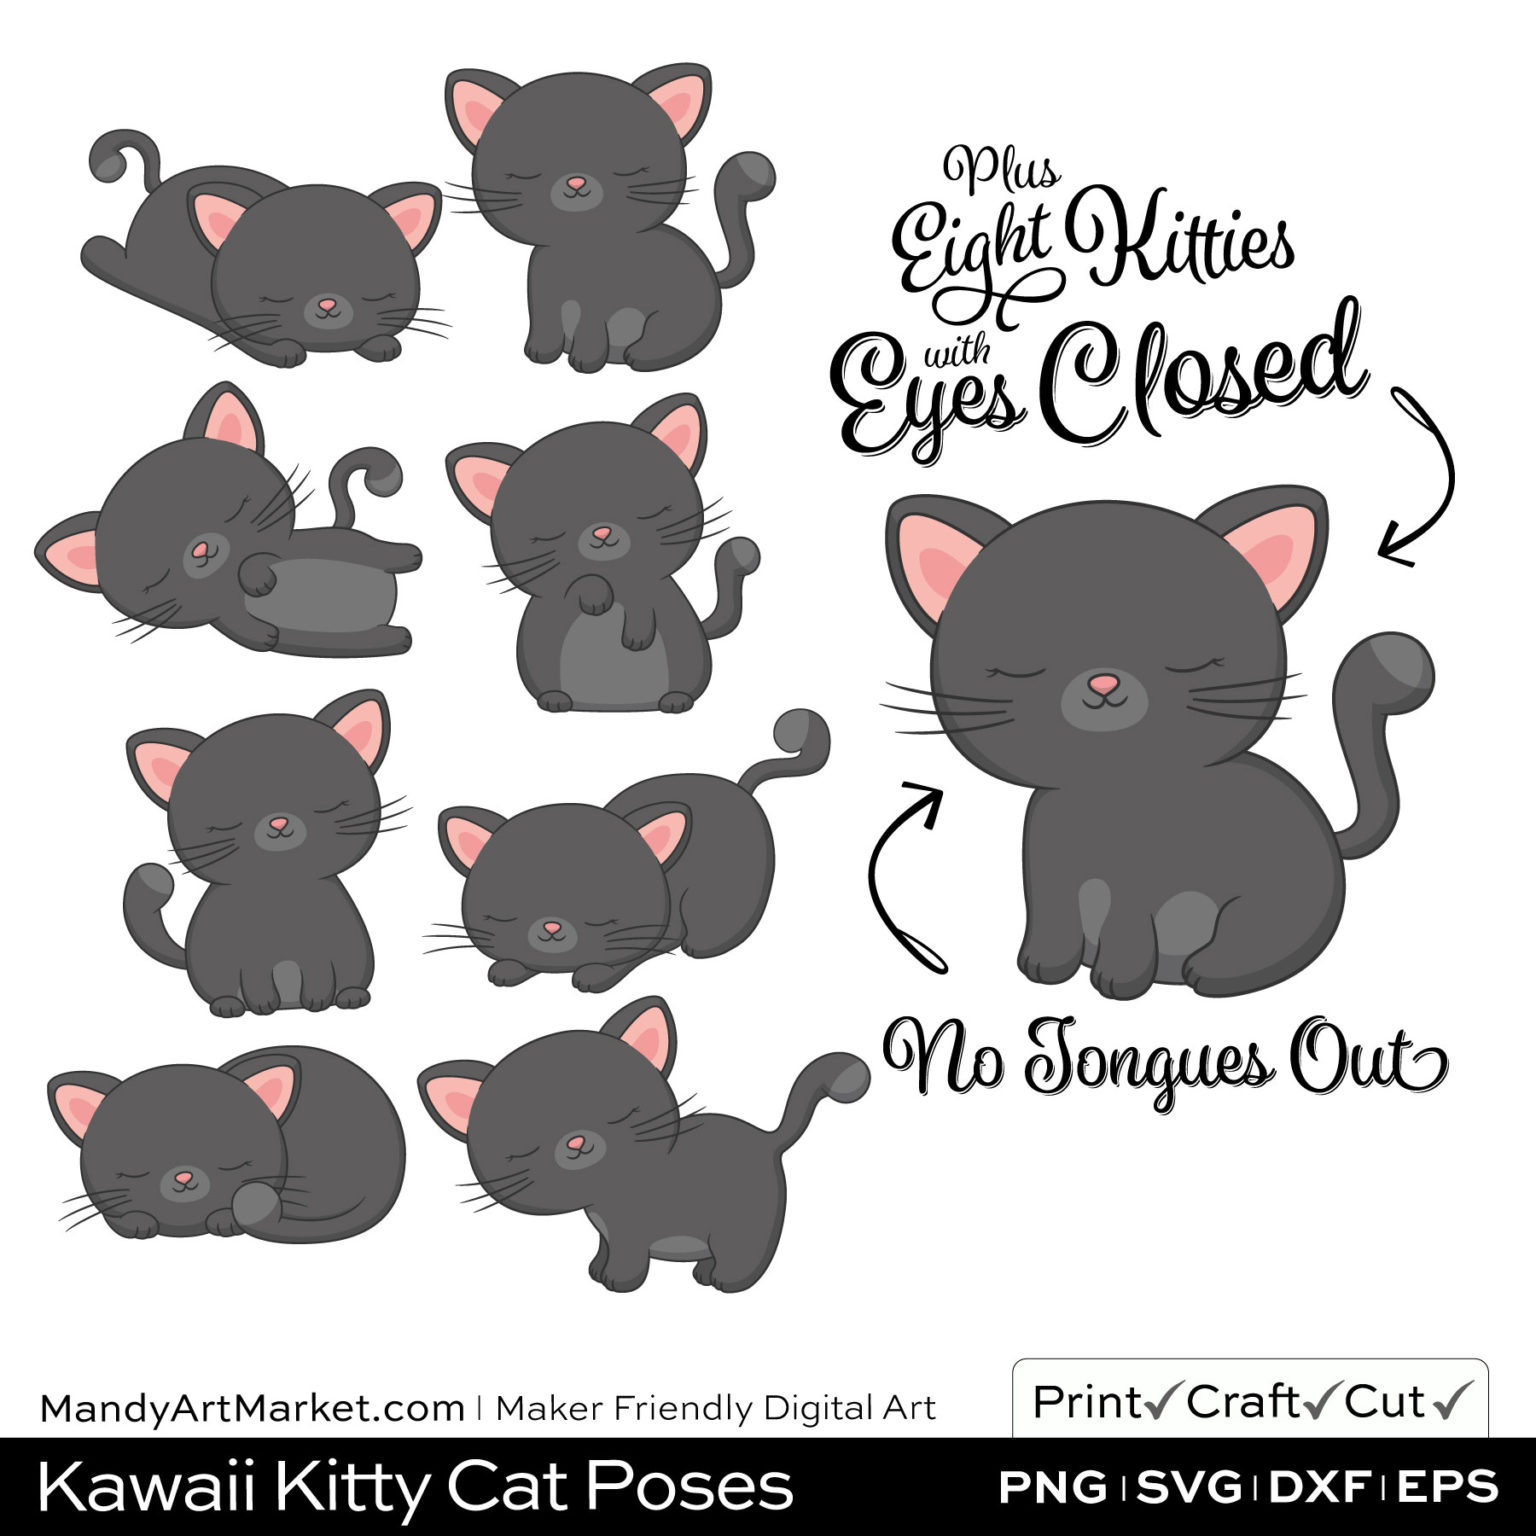 Shadow Gray Kawaii Kitty Cat Poses Clipart PNGs Included in Download